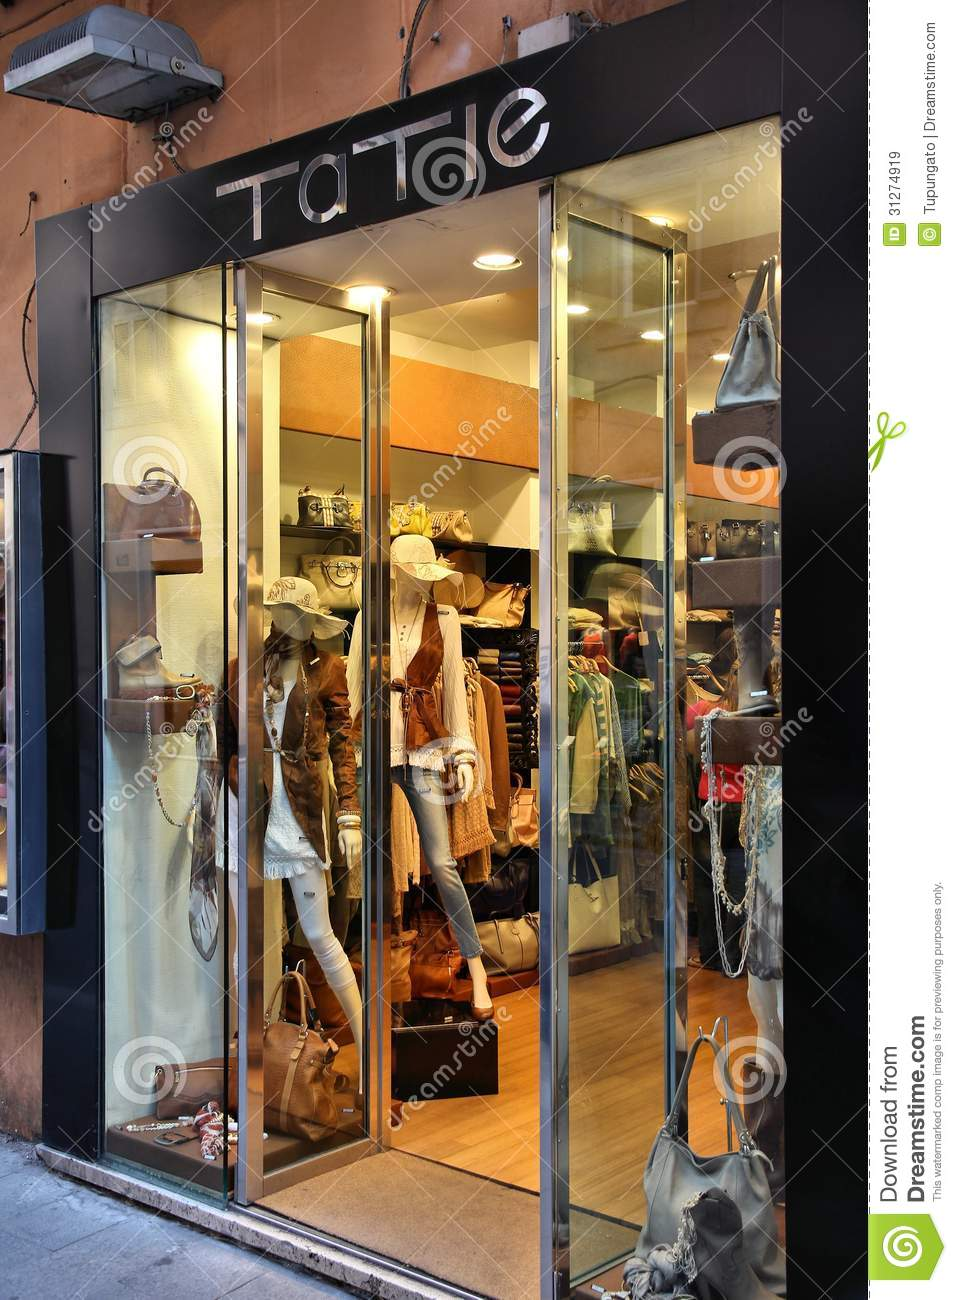 Clothing stores in rome